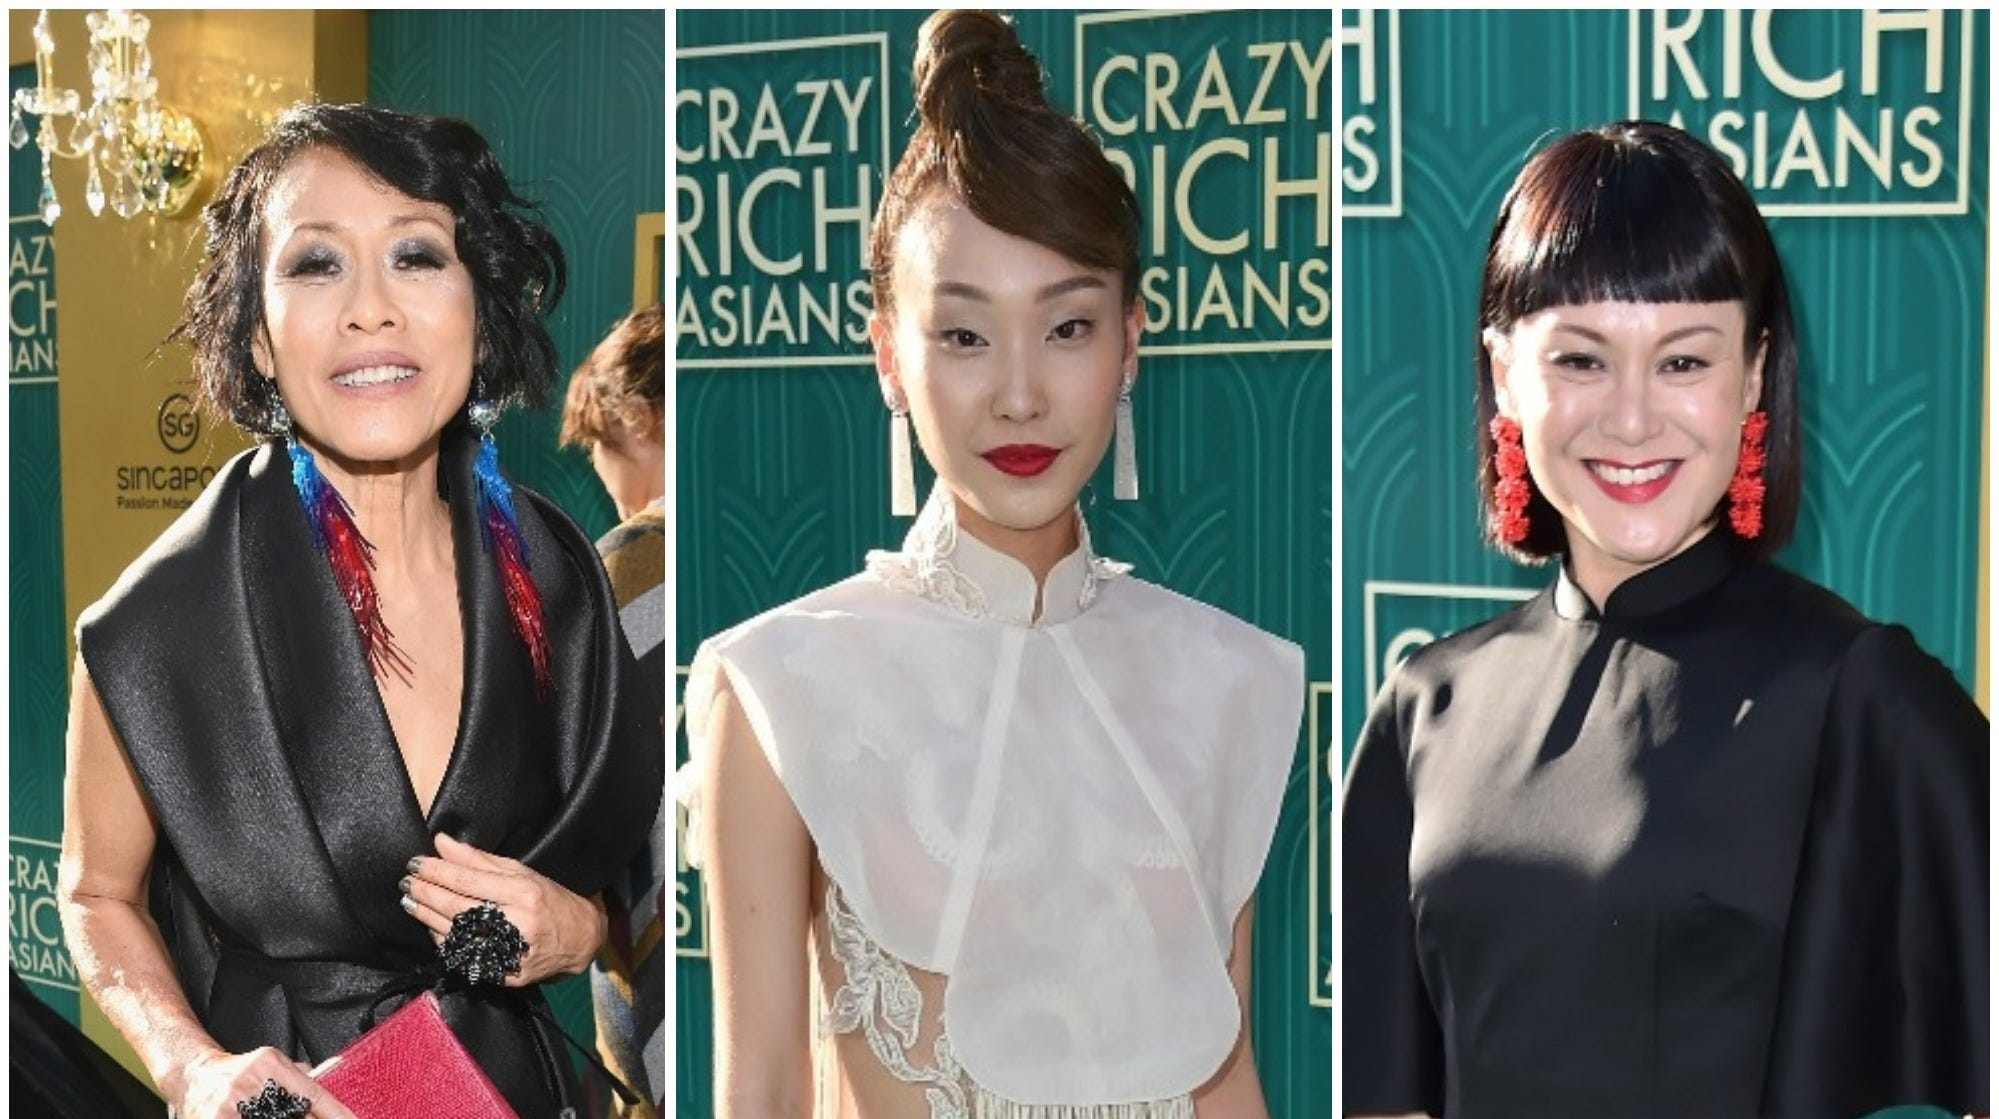 Tan Kheng Hua, Constance Lau and Janice Tan are three of the